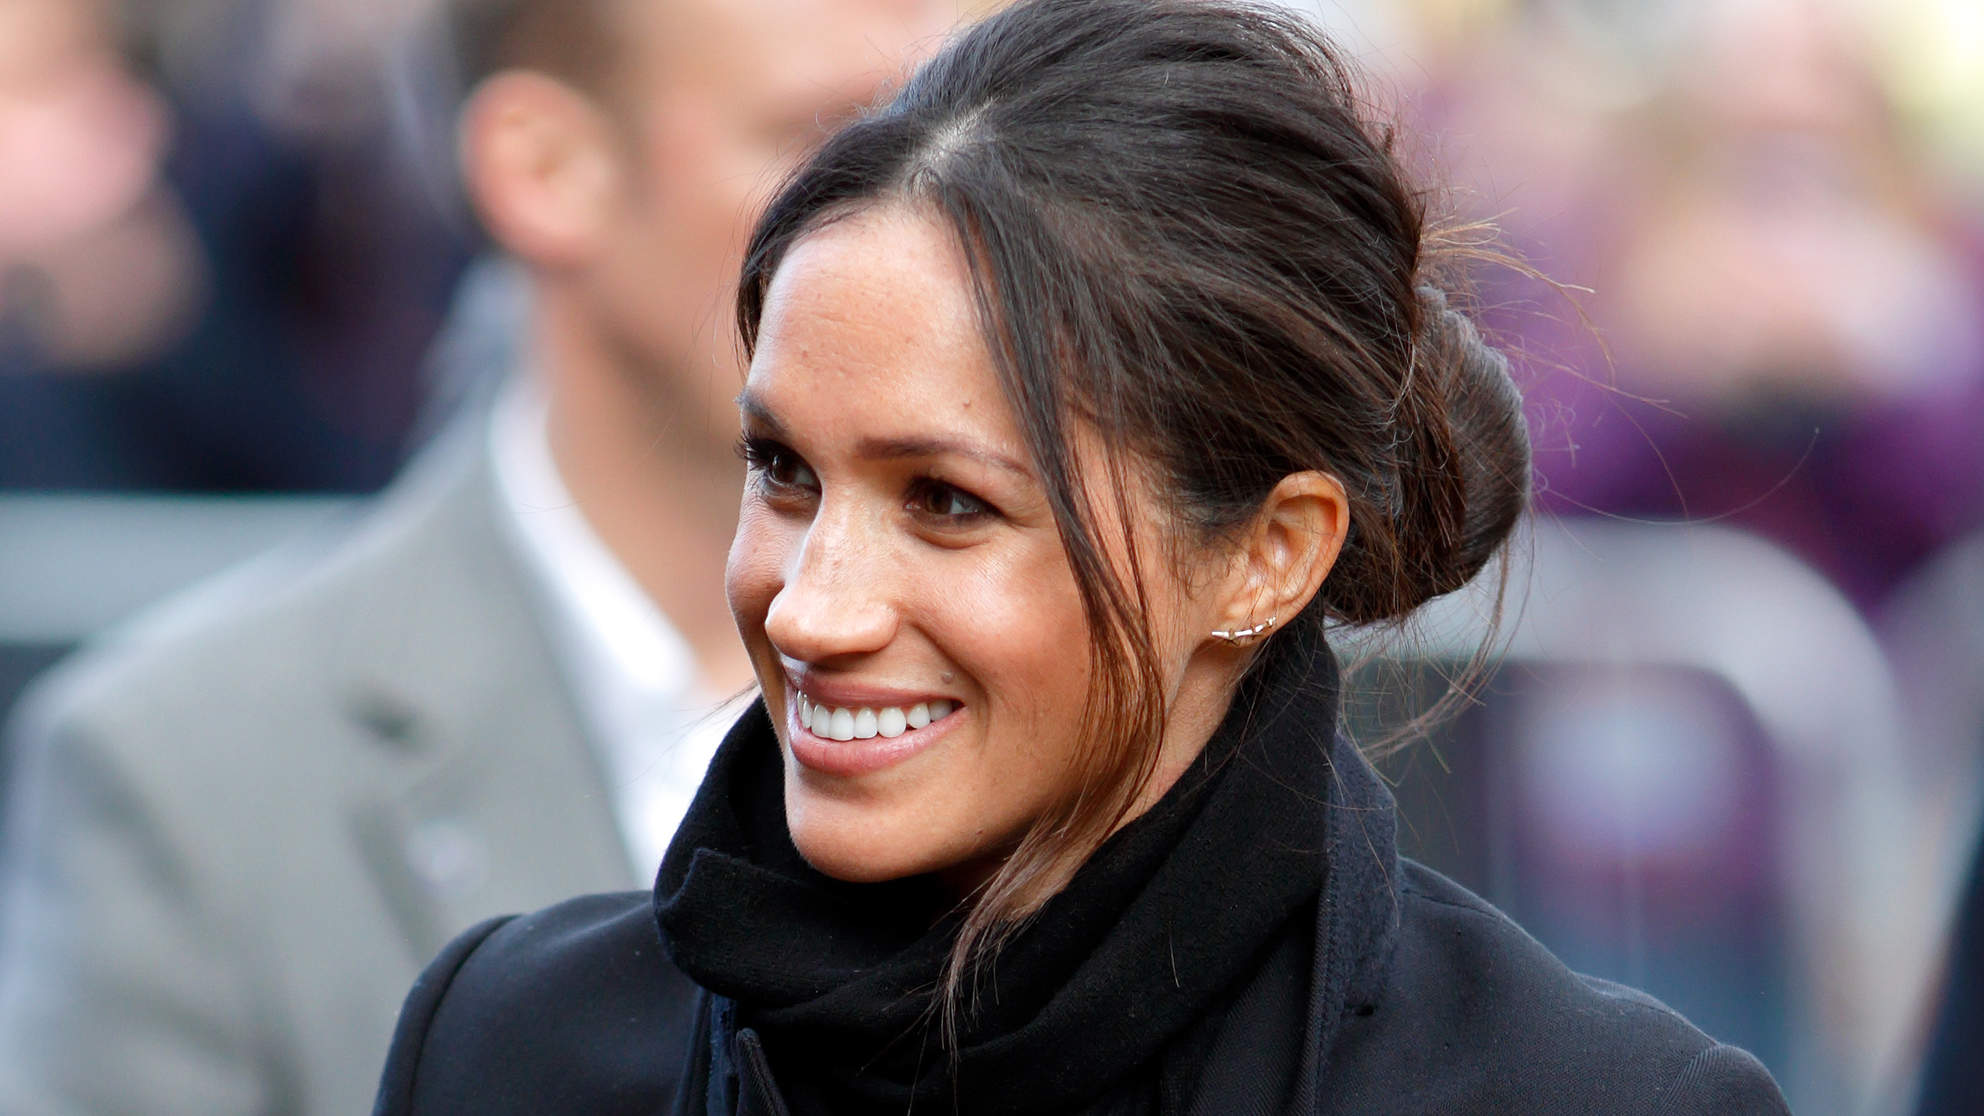 Act 9 Coiffure Messy Bun Ideas To Get An Updo Like Meghan Markle 39s